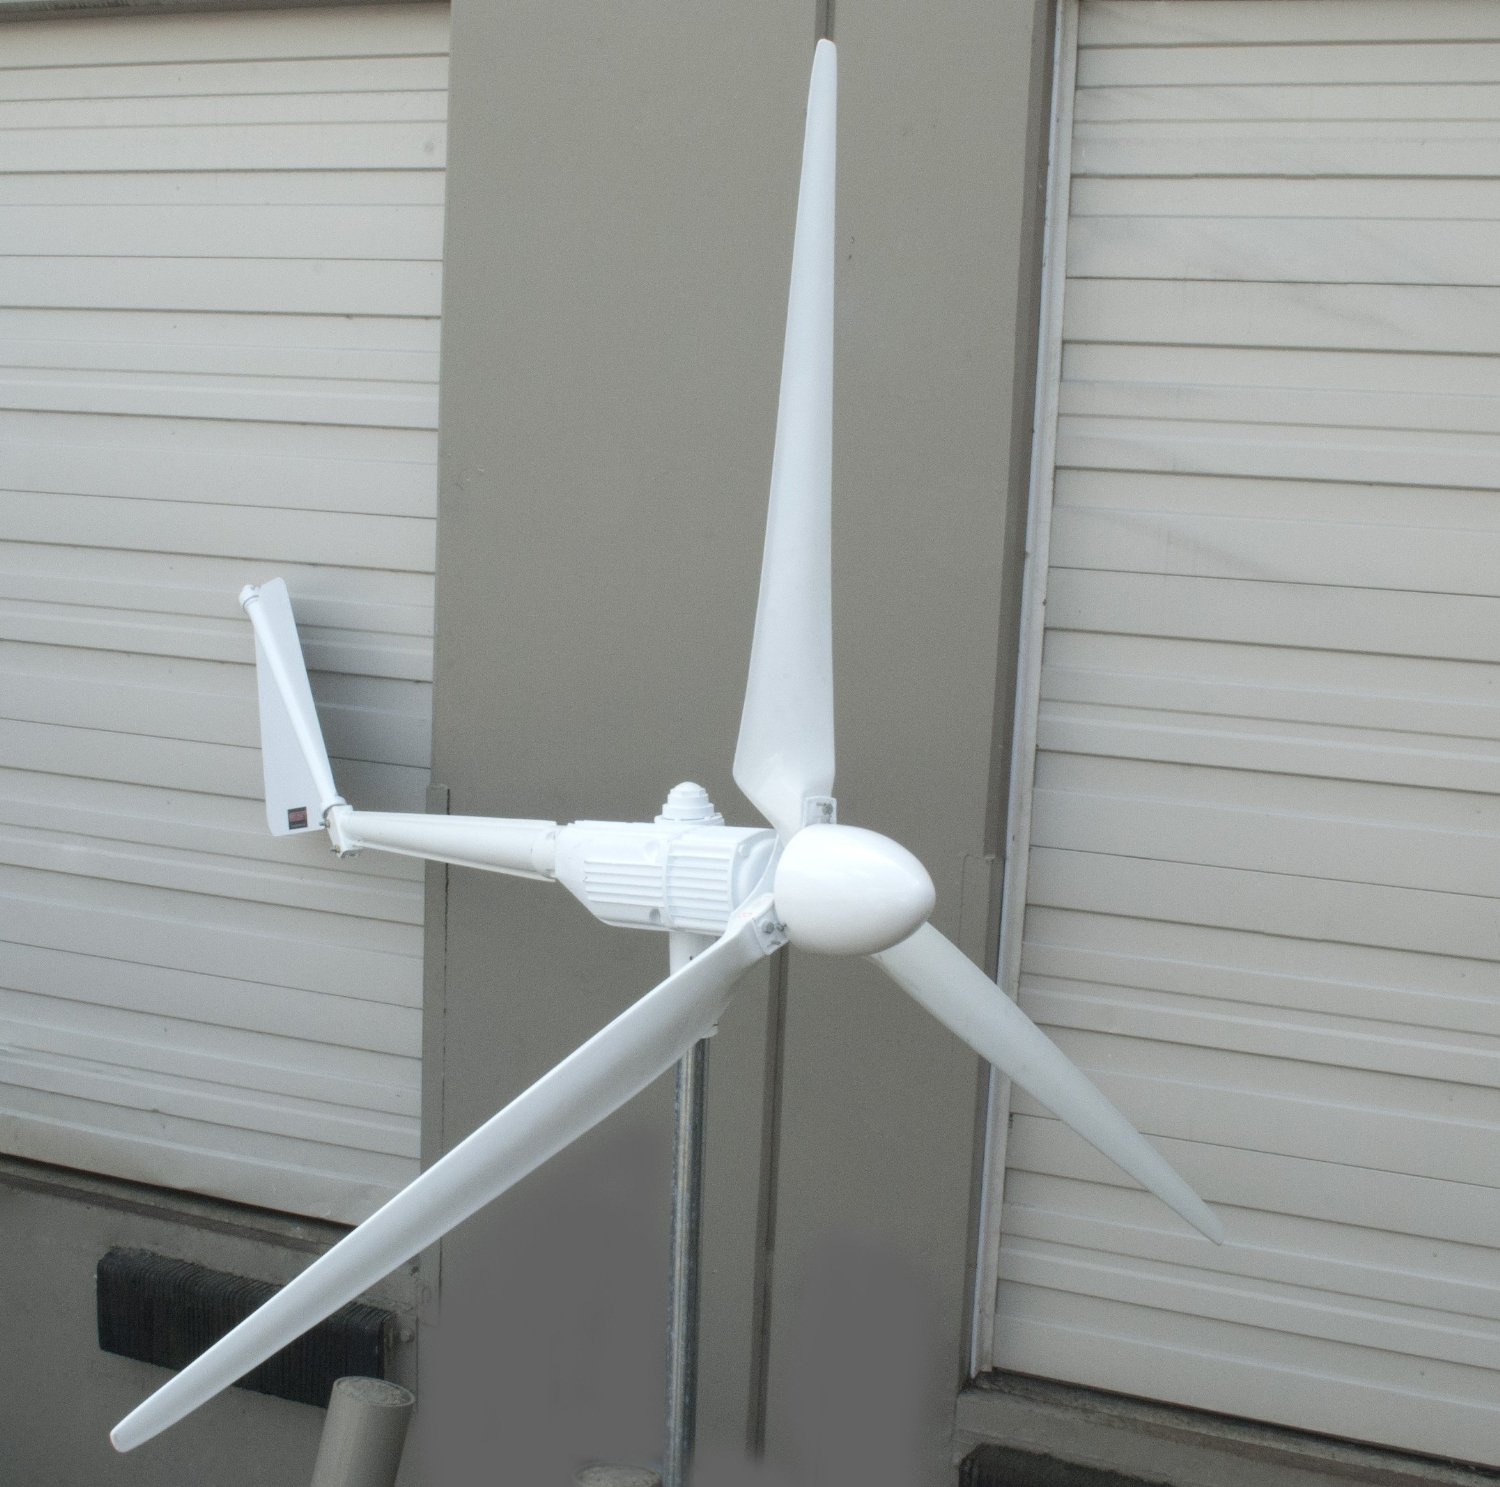 Top 10 best wind turbine generators for home use 2017 reviews